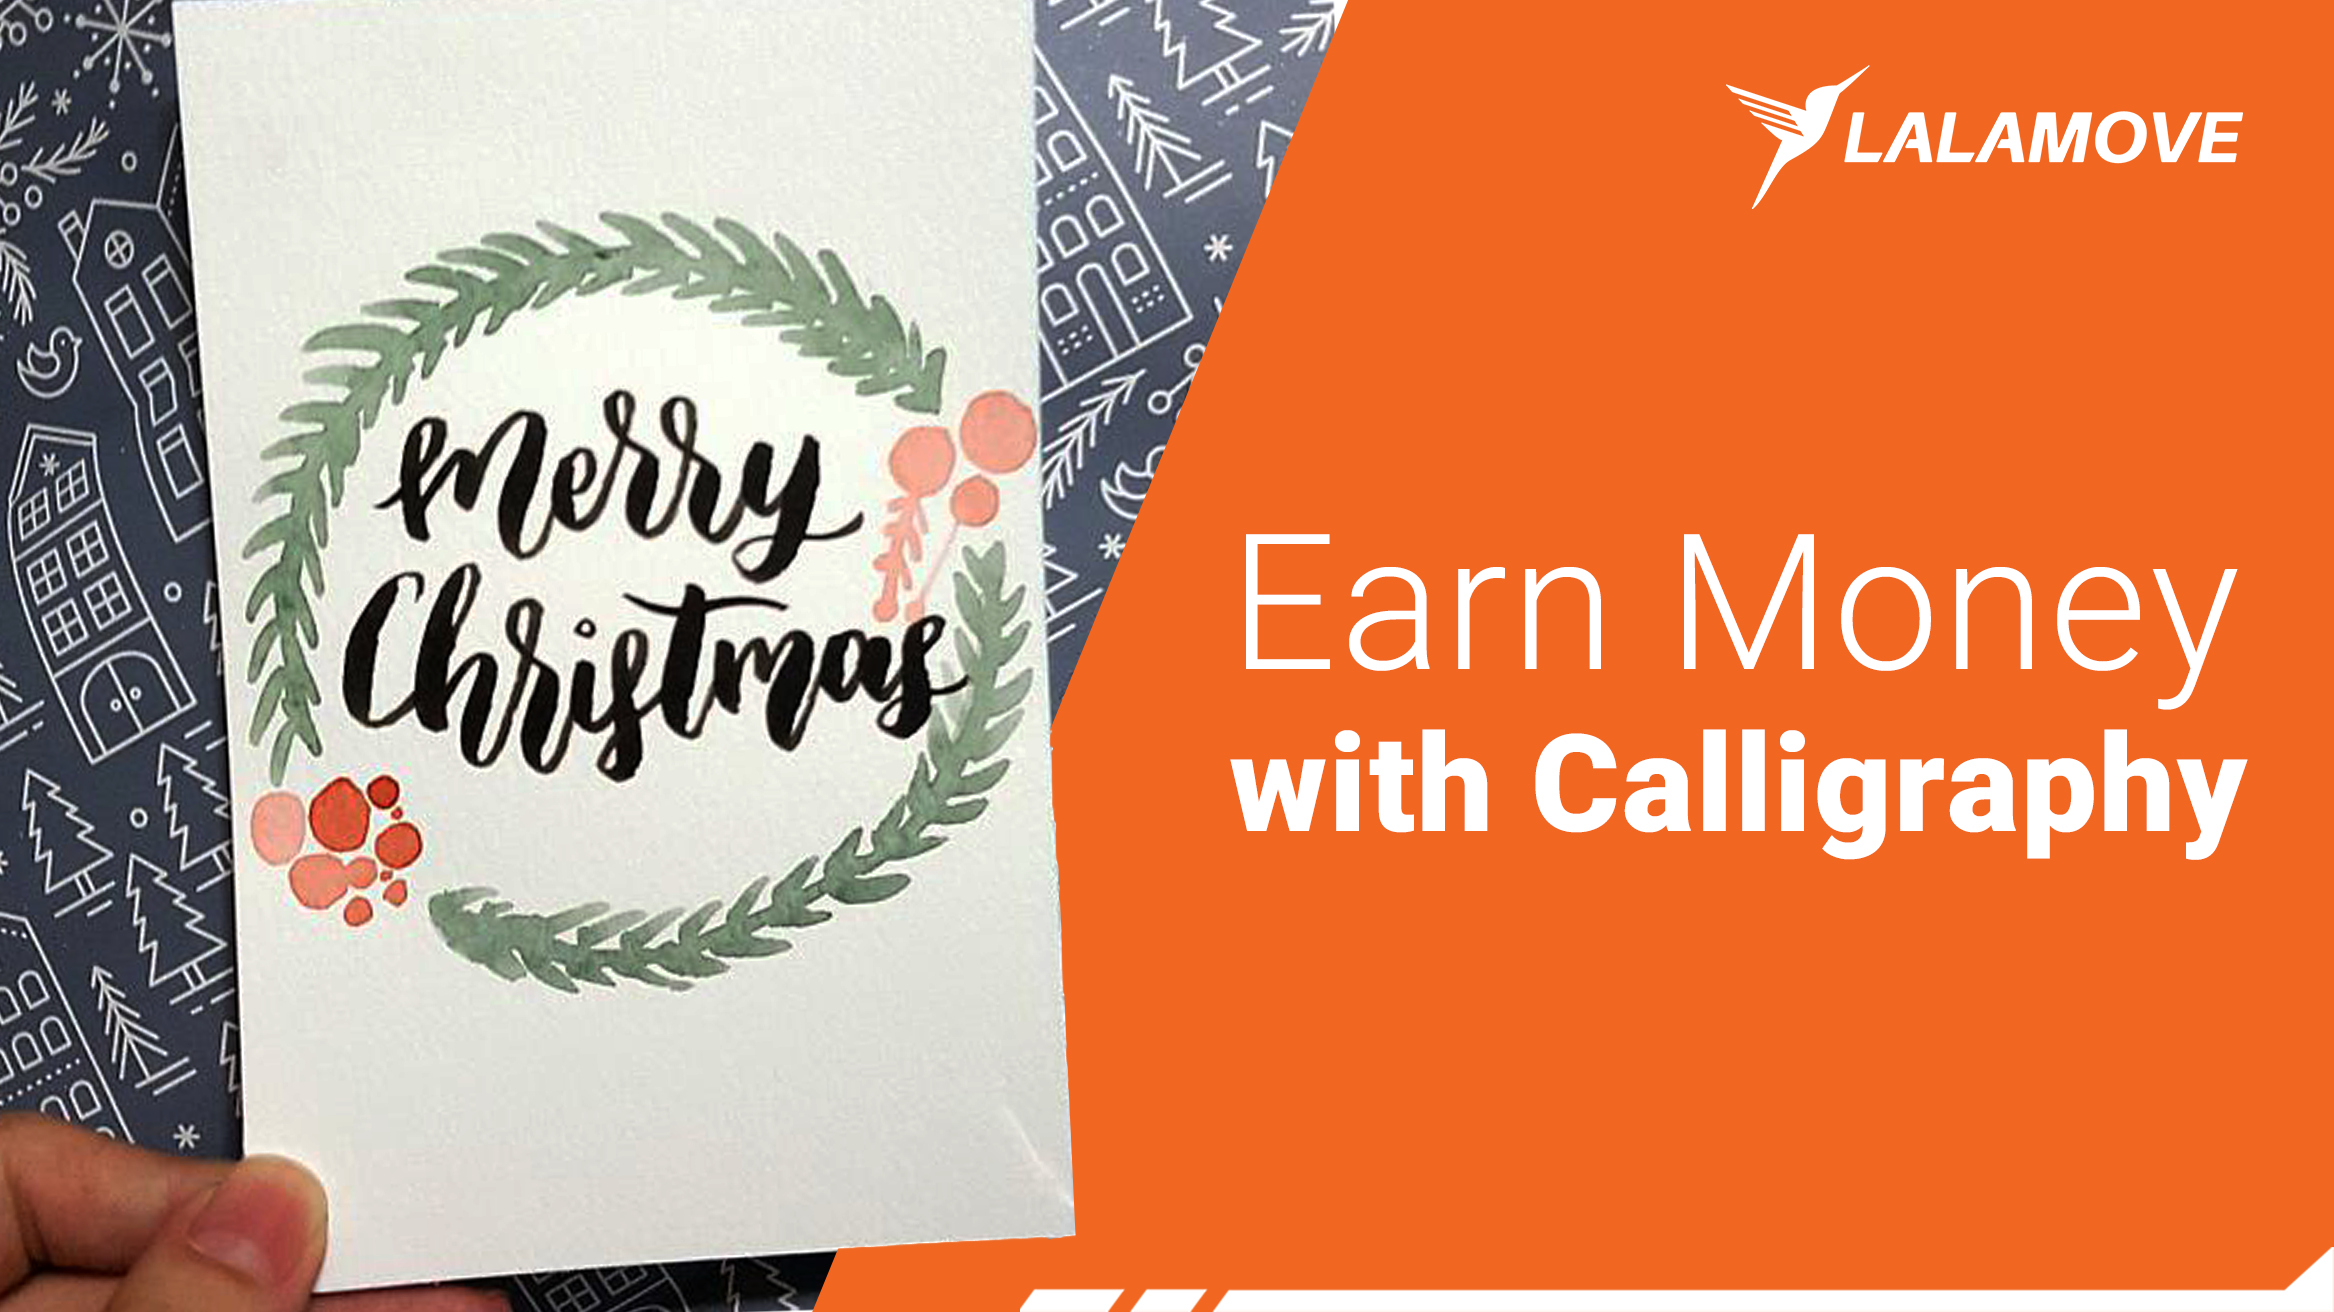 Write on the Money: Calligraphy Business for Christmas!